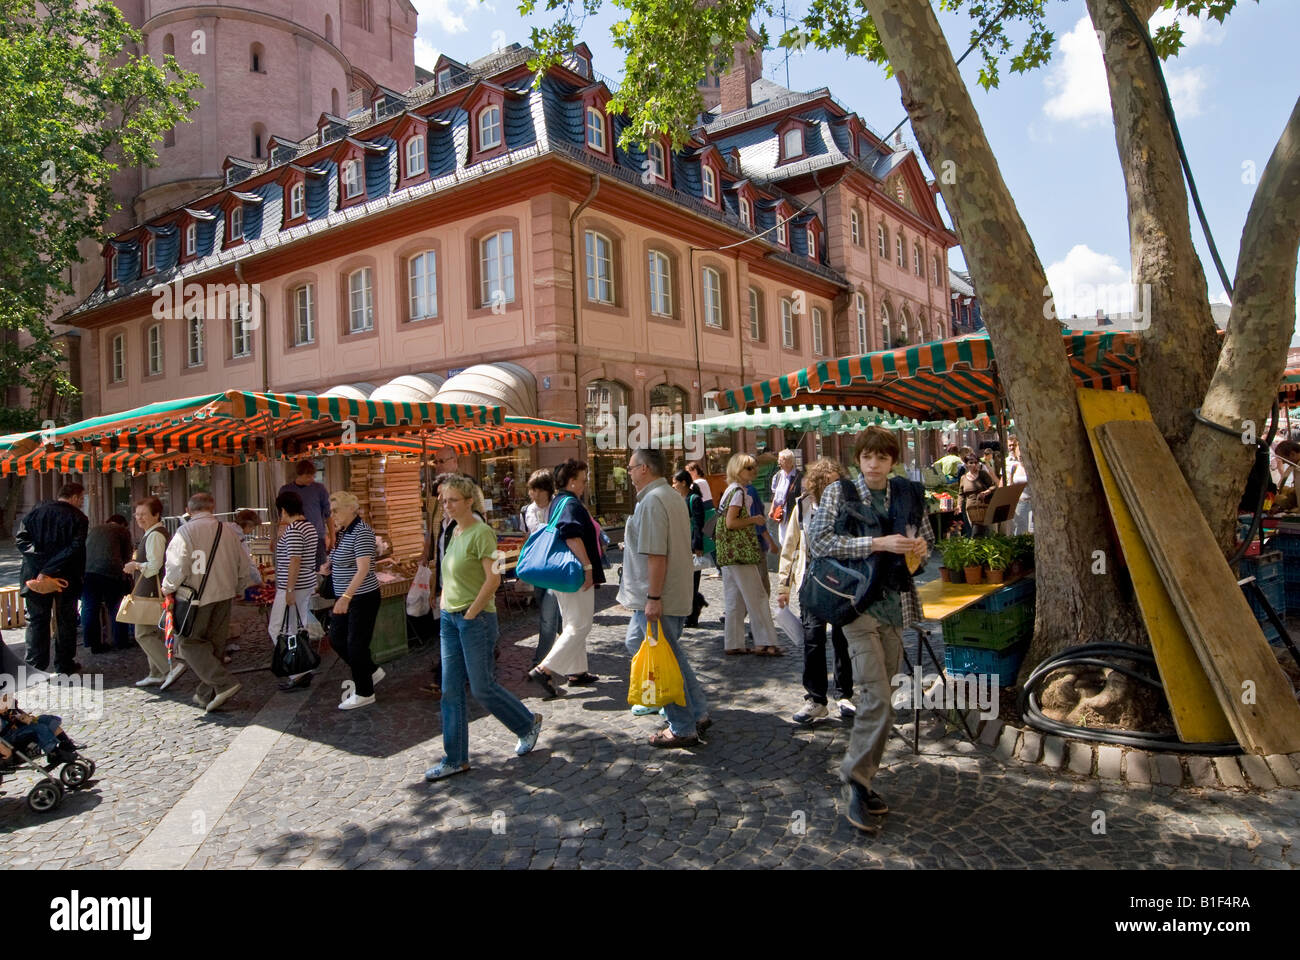 Market on Tuesday on the square in front of the cathedral in the center of the city of Mainz in Germany. - Stock Image